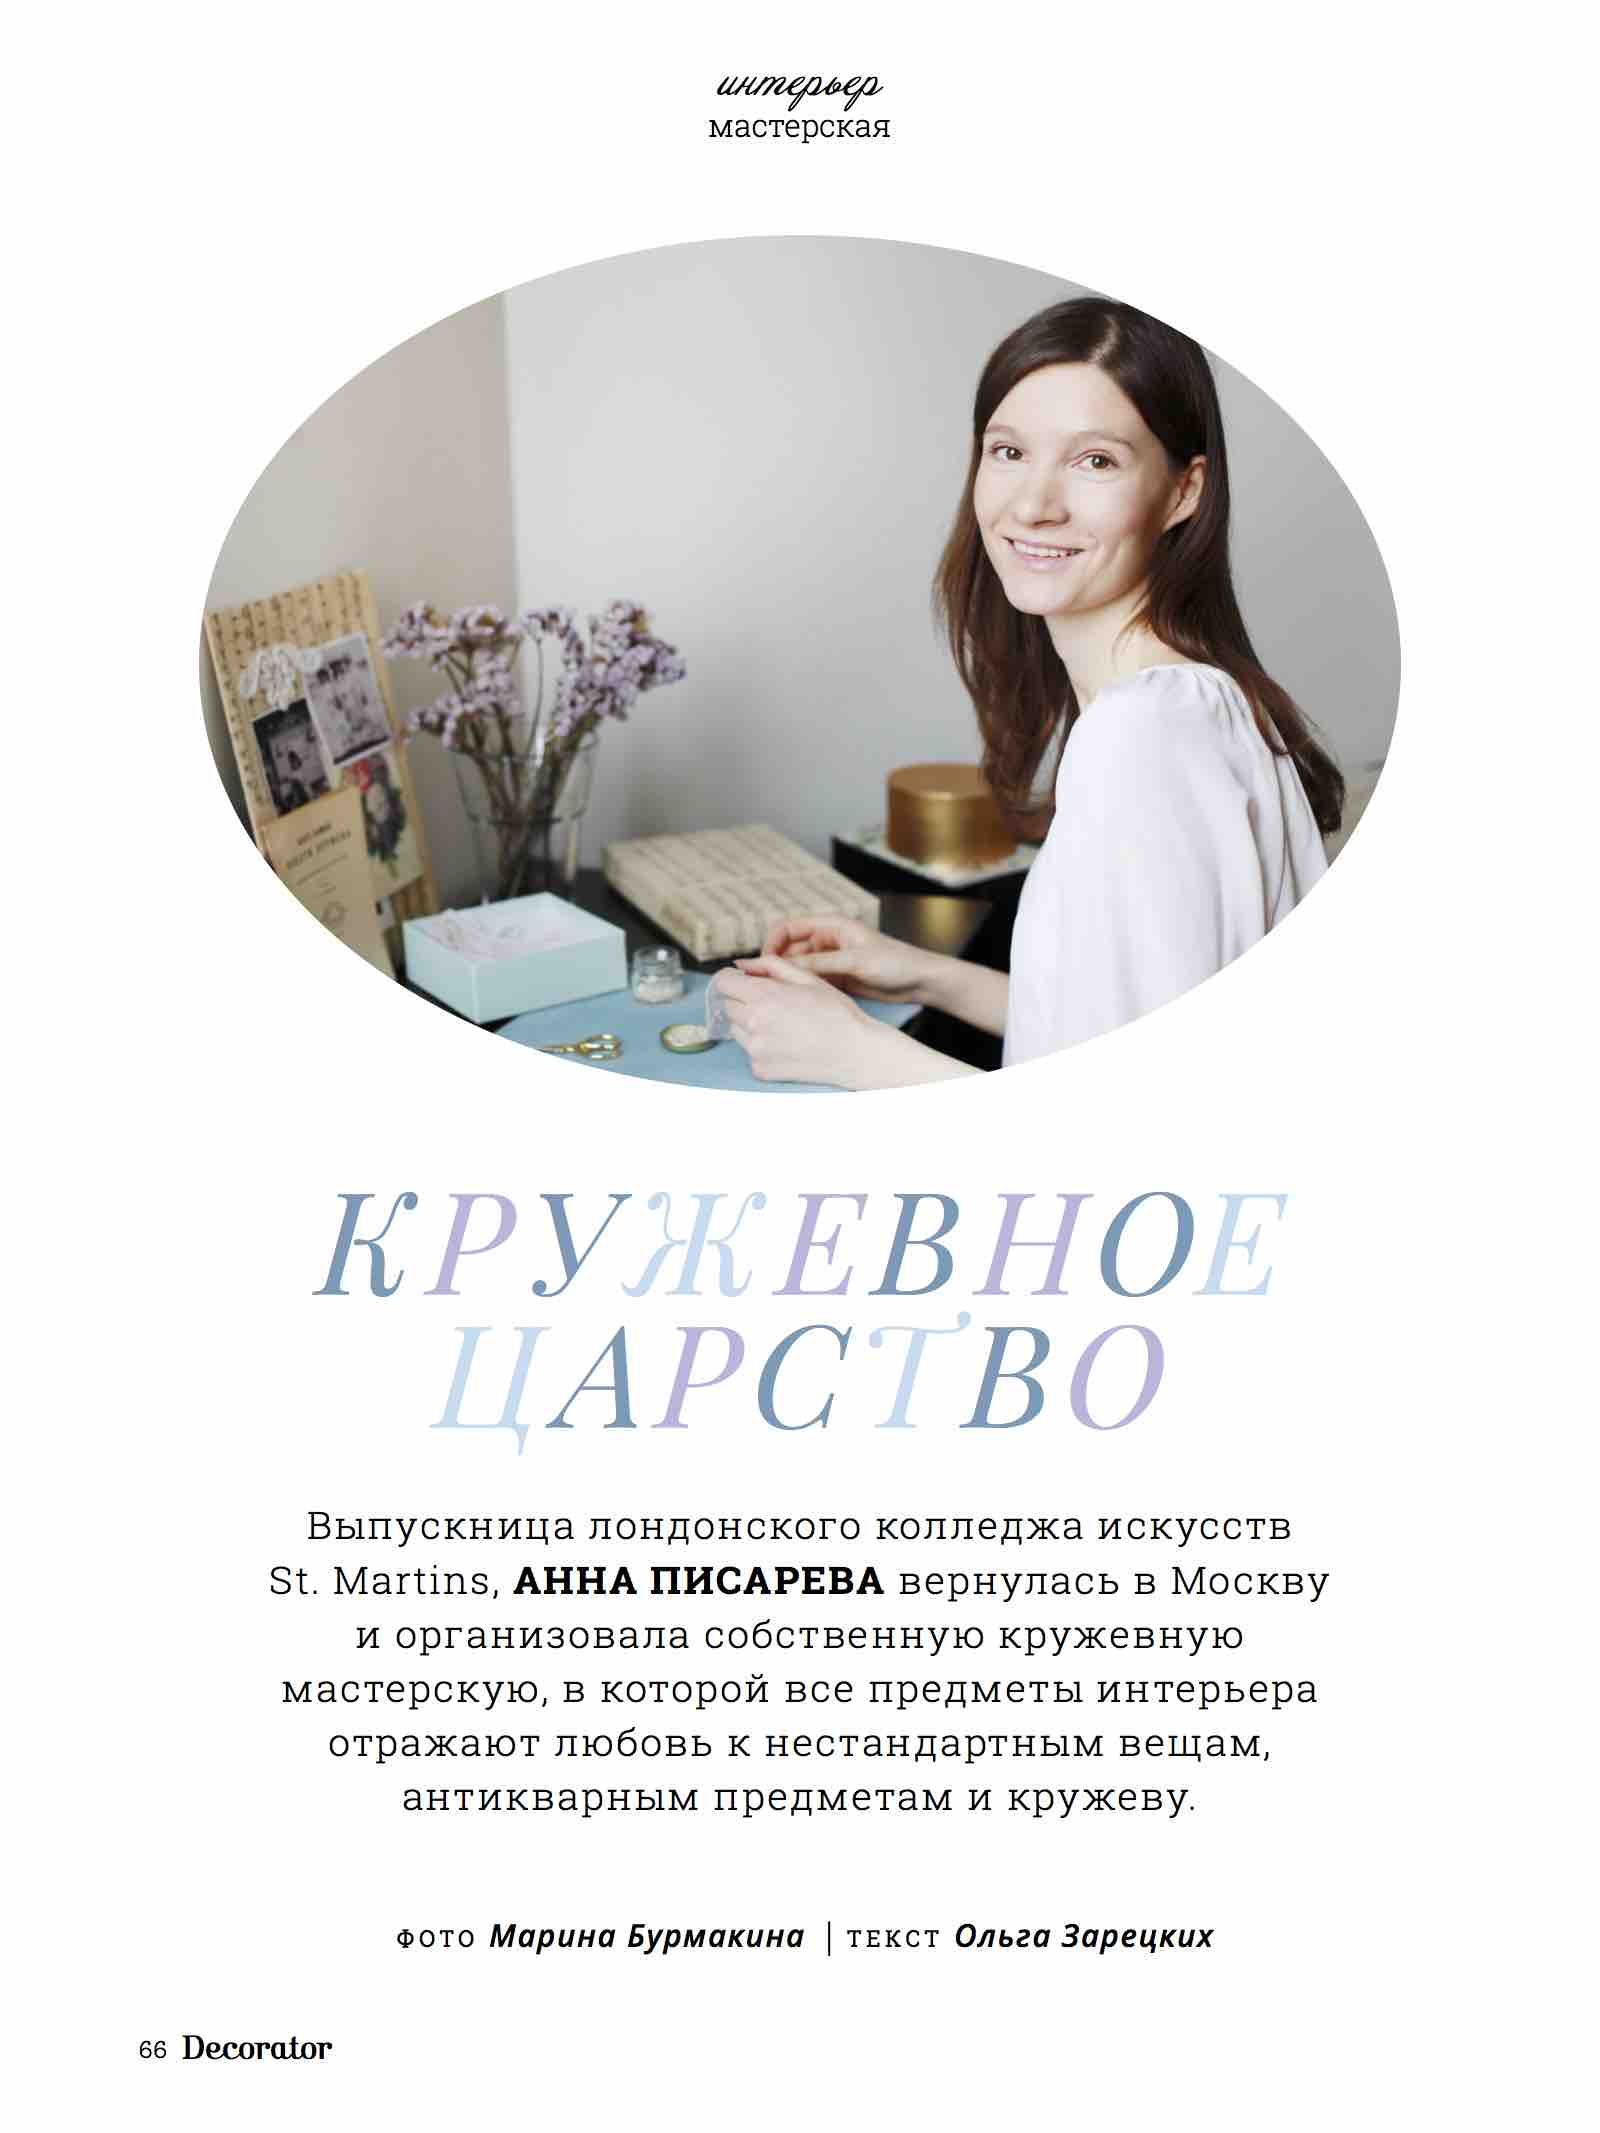 Anna Pisareva Press Decorator